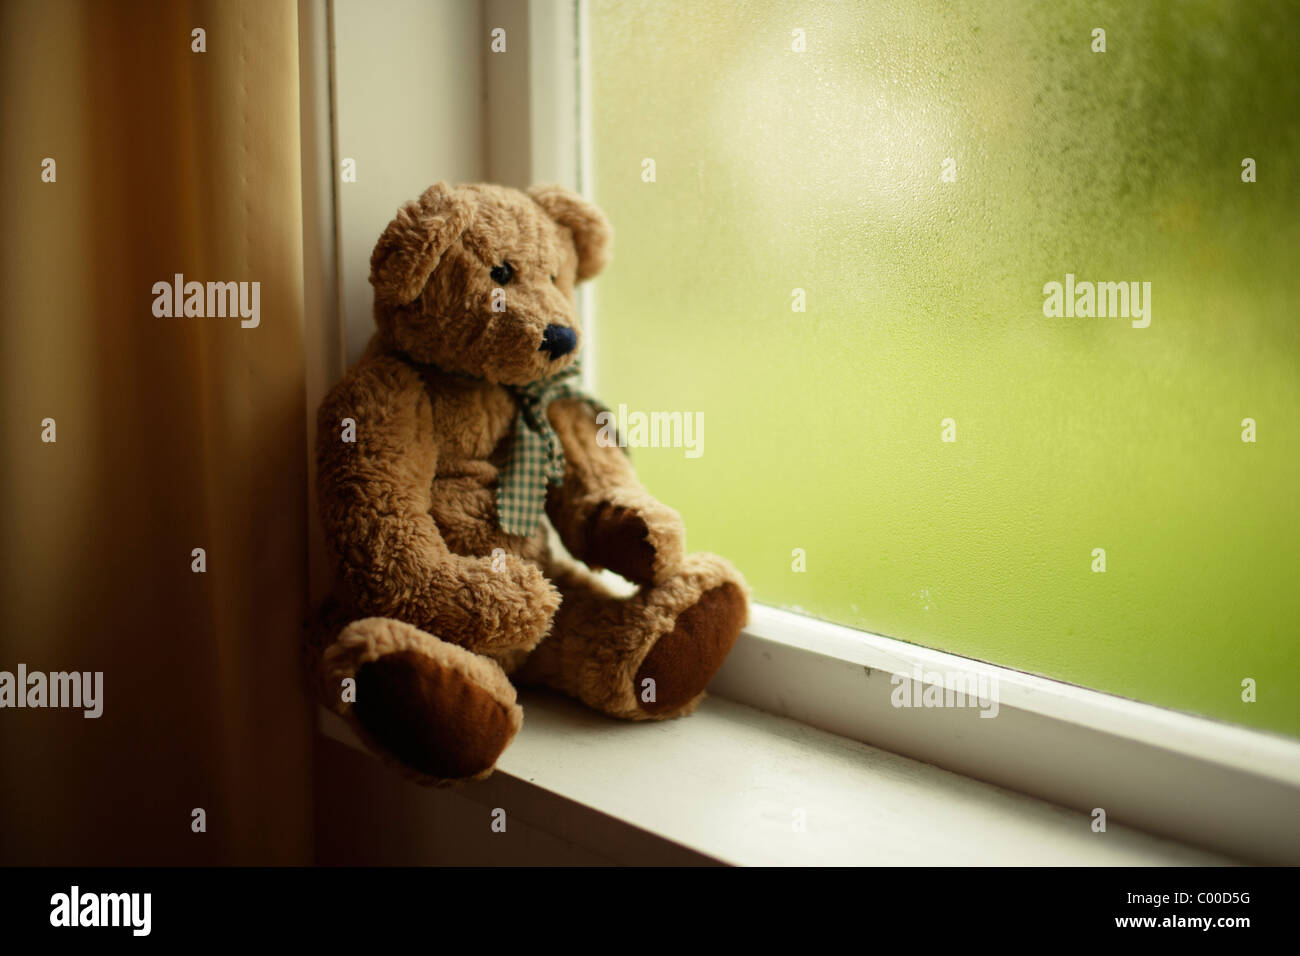 Teddy bear looks out of window - Stock Image